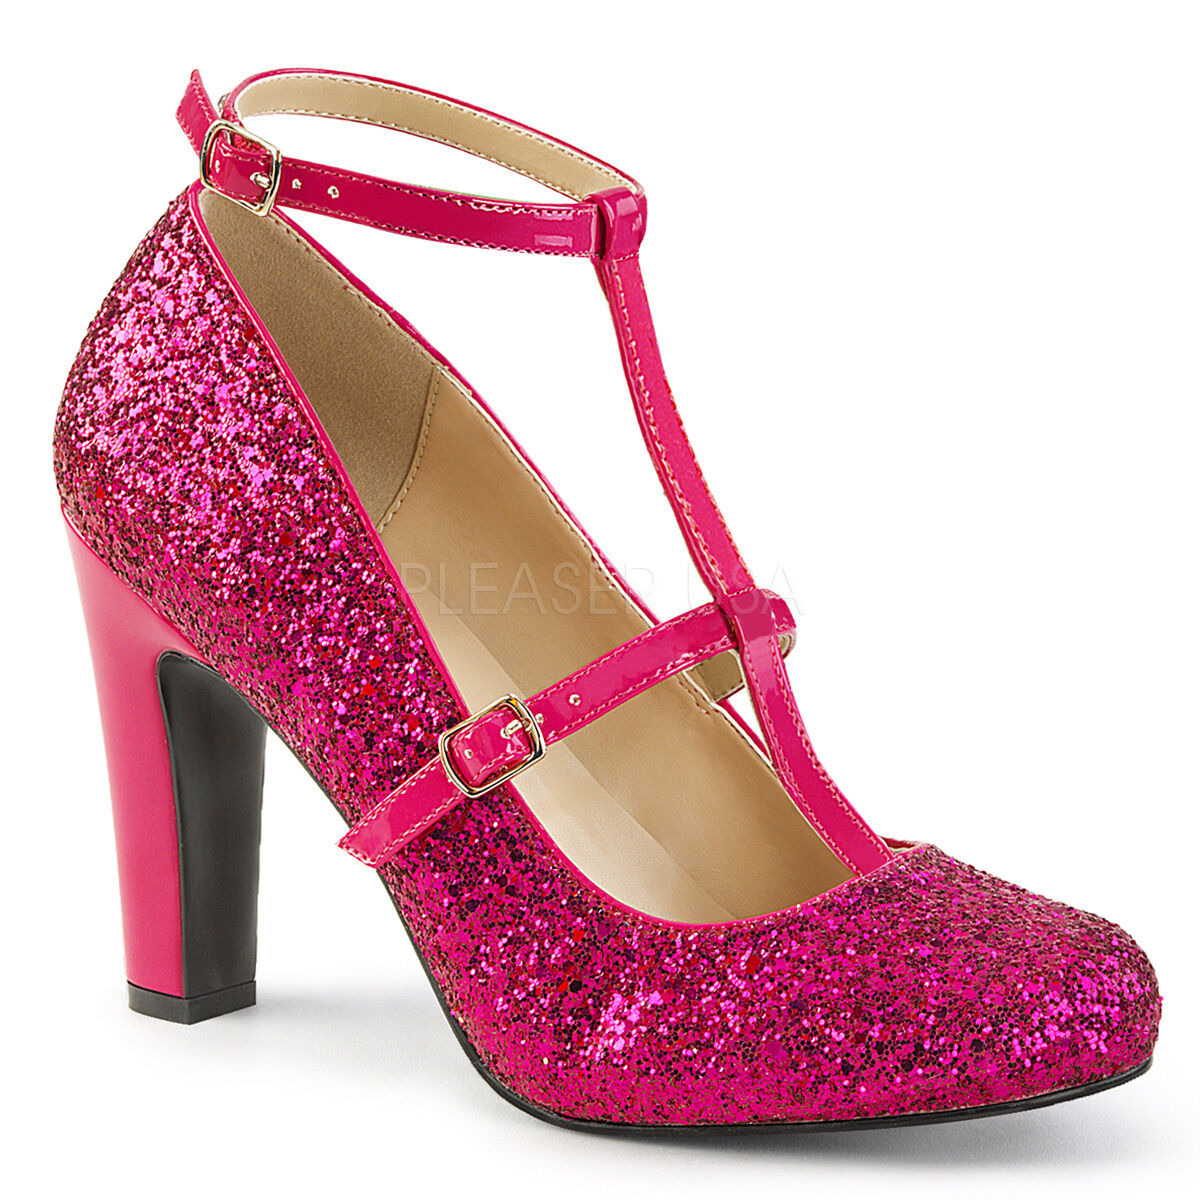 PLEASER Sexy 4  High Heel Round Toe Pumps schuhe with Hot Rosa Glitters